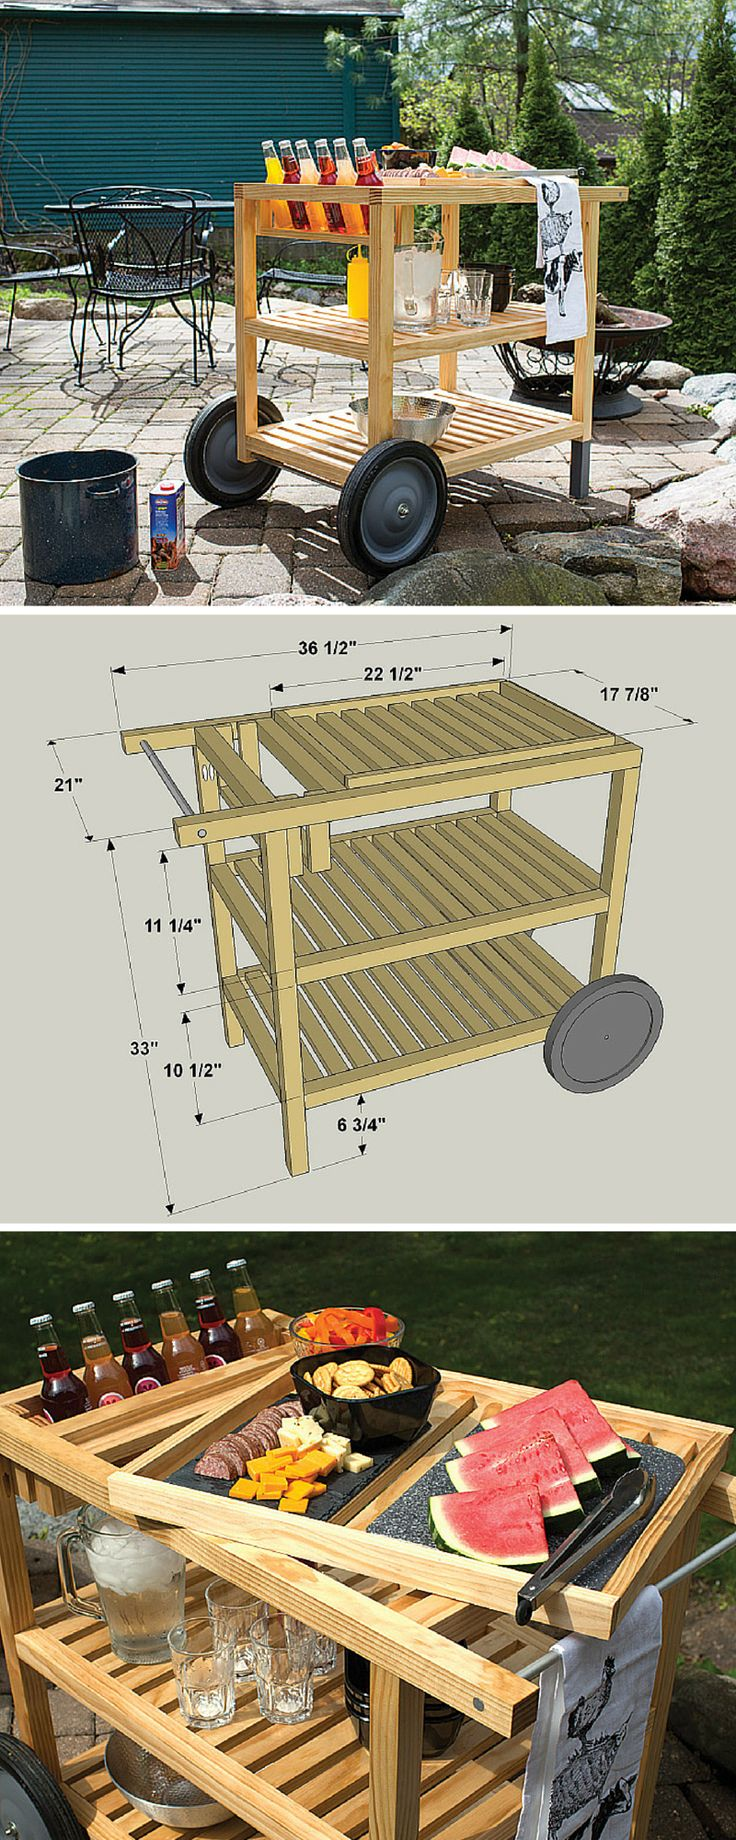 """Make outdoor entertaining easy with this serving cart. It offers lots of space for storing food, tableware, and outdoor supplies, plus it cradles bottles where they're easy to reach but protected from spills. The top """"shelf"""" is a lift-off tray, so you can carry supplies from the cart to your table. Get the free DIY plans at buildsomething.com"""